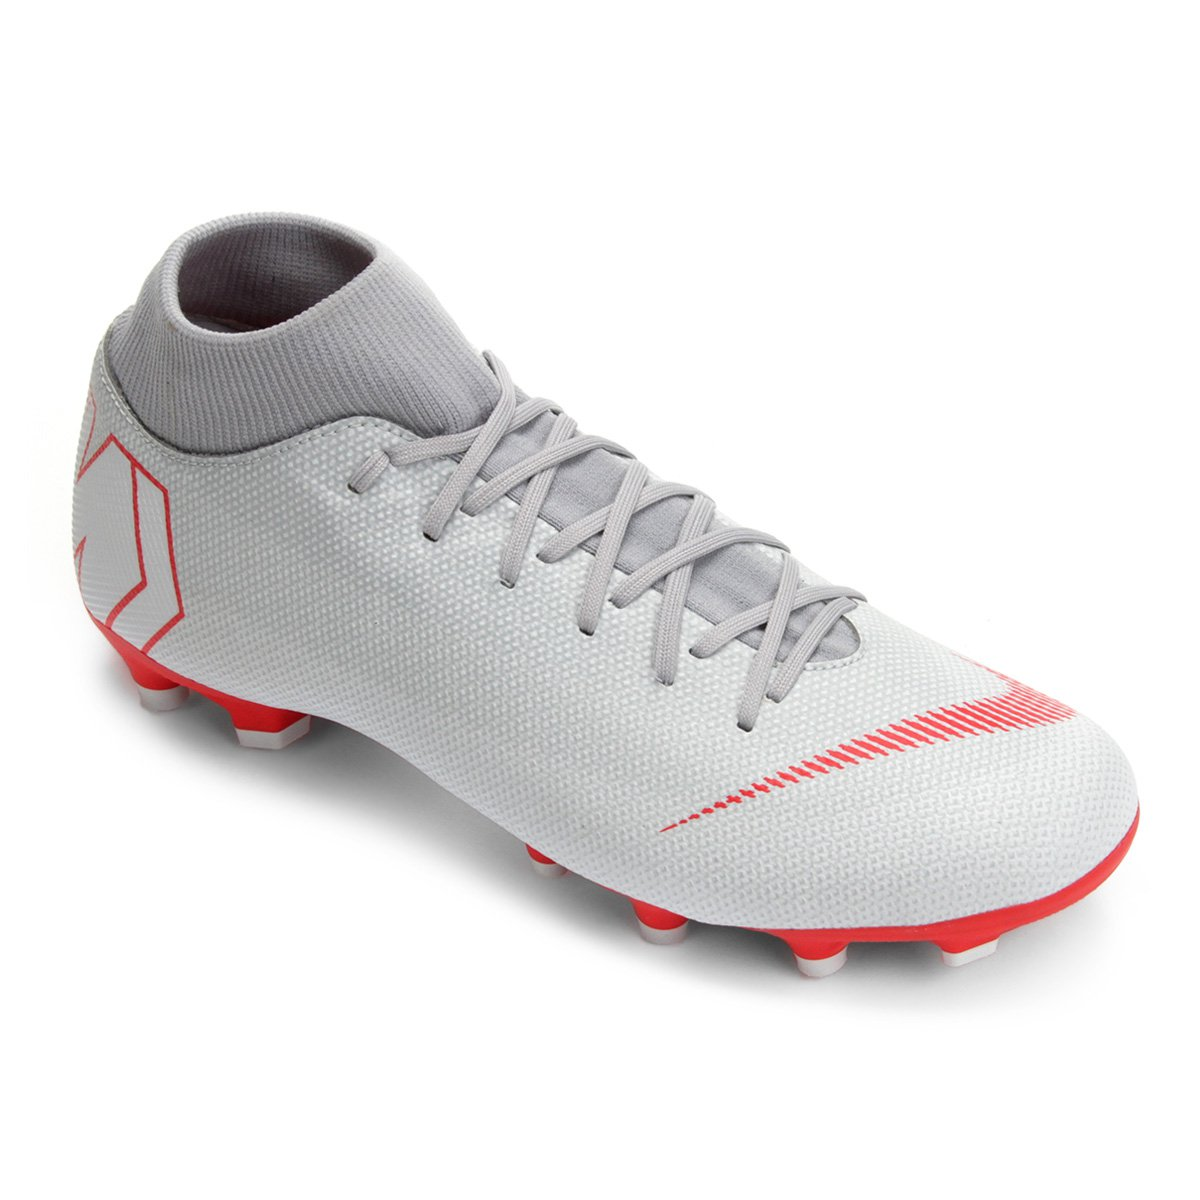 Chuteira Campo Nike Mercurial Superfly 6 Academy - Cinza - Compre ... 048f6f964518f